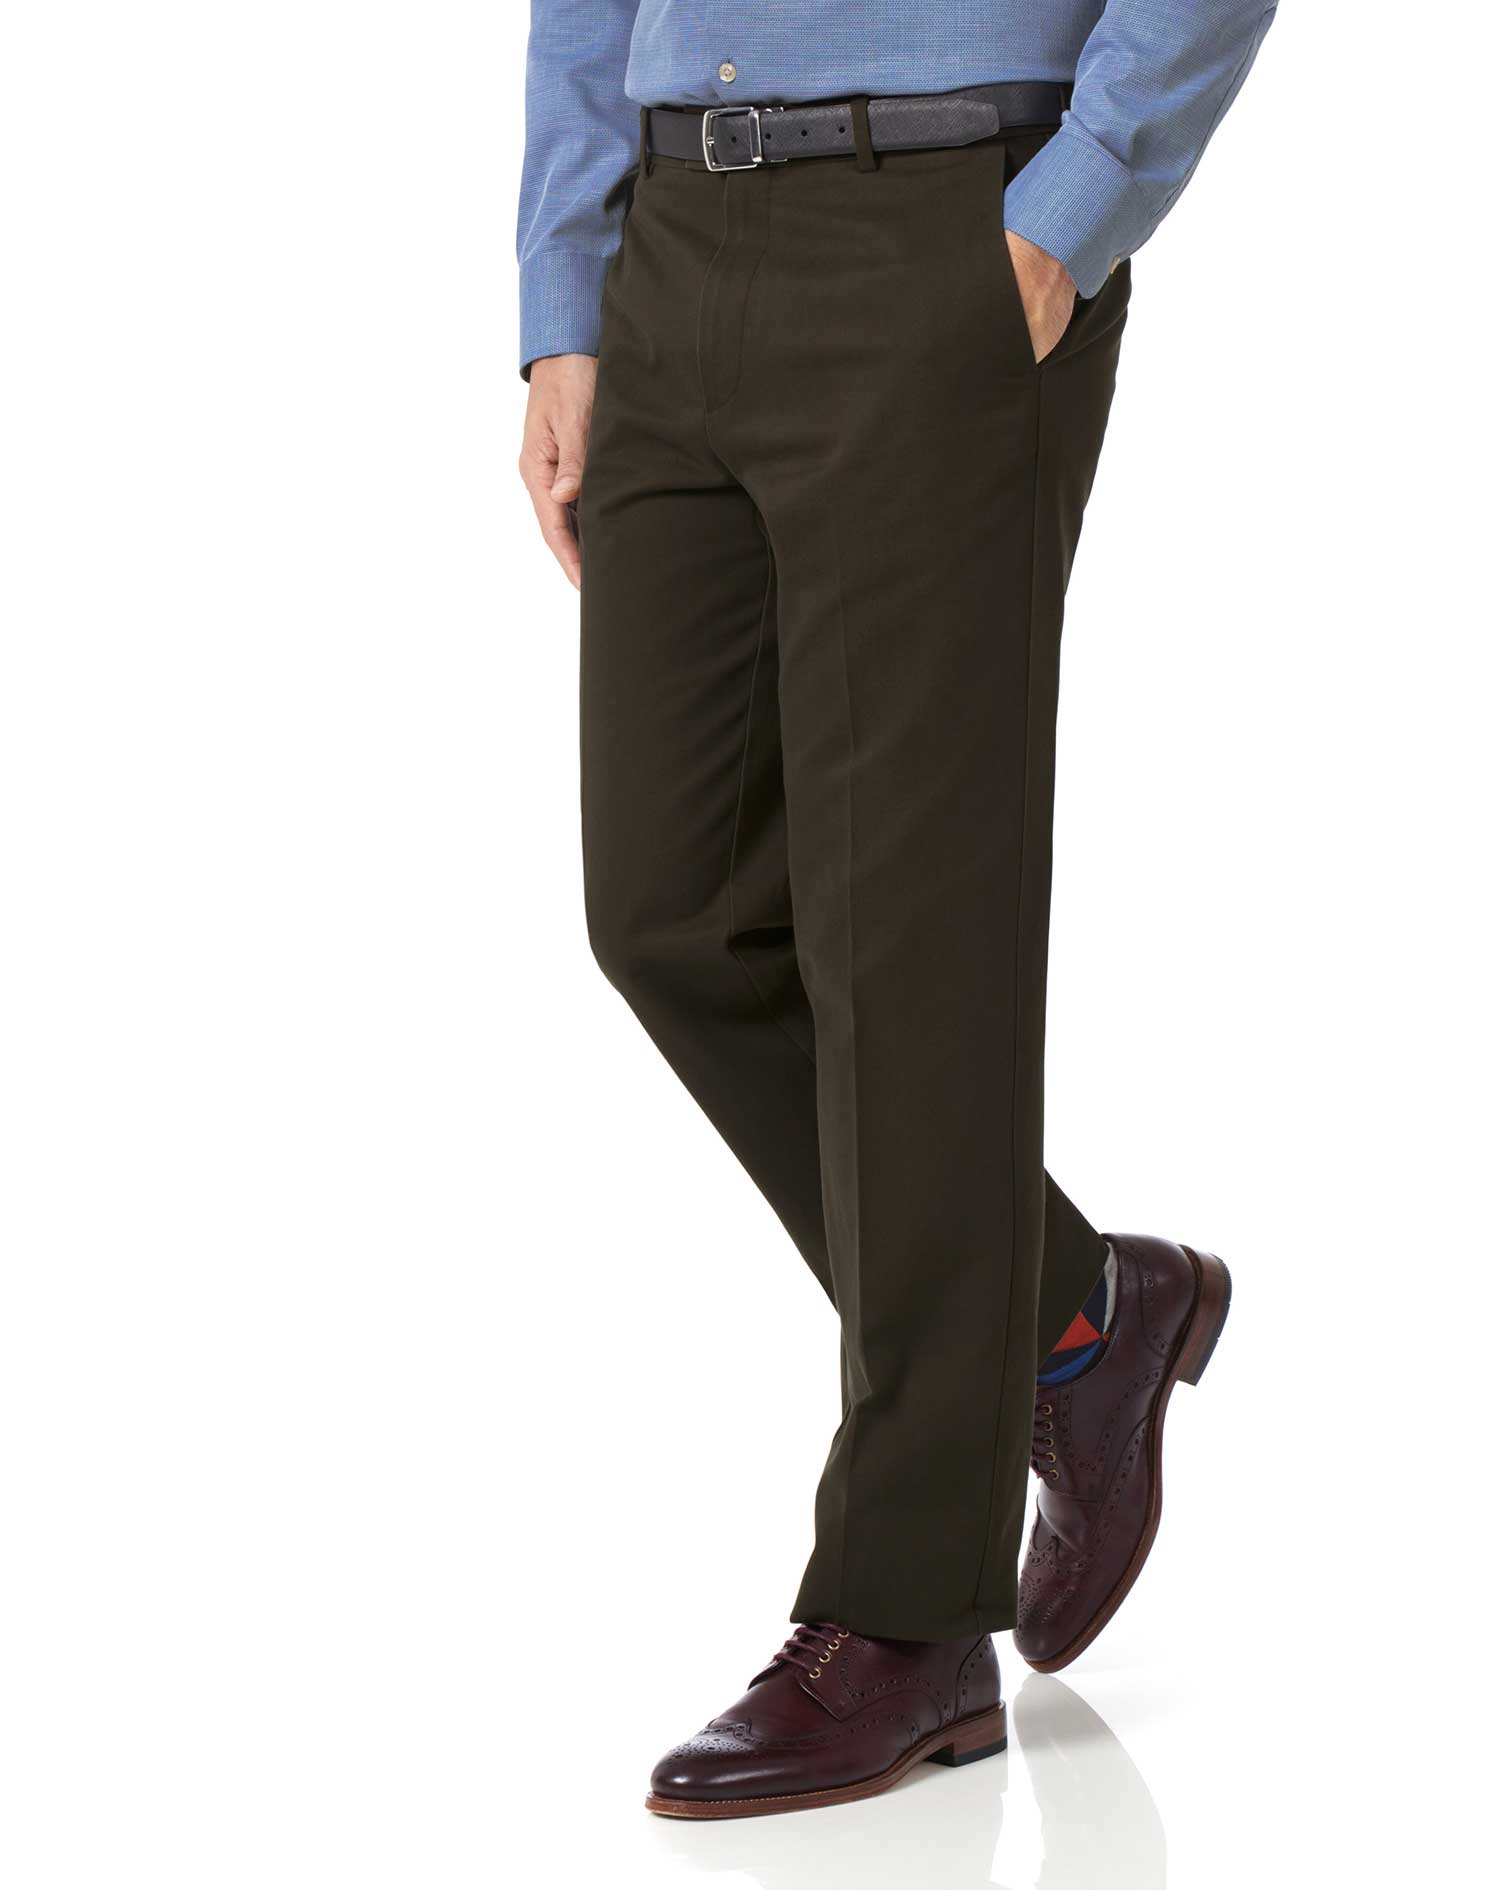 Brown Classic Fit Flat Front Non-Iron Cotton Chino Trousers Size W36 L30 by Charles Tyrwhitt